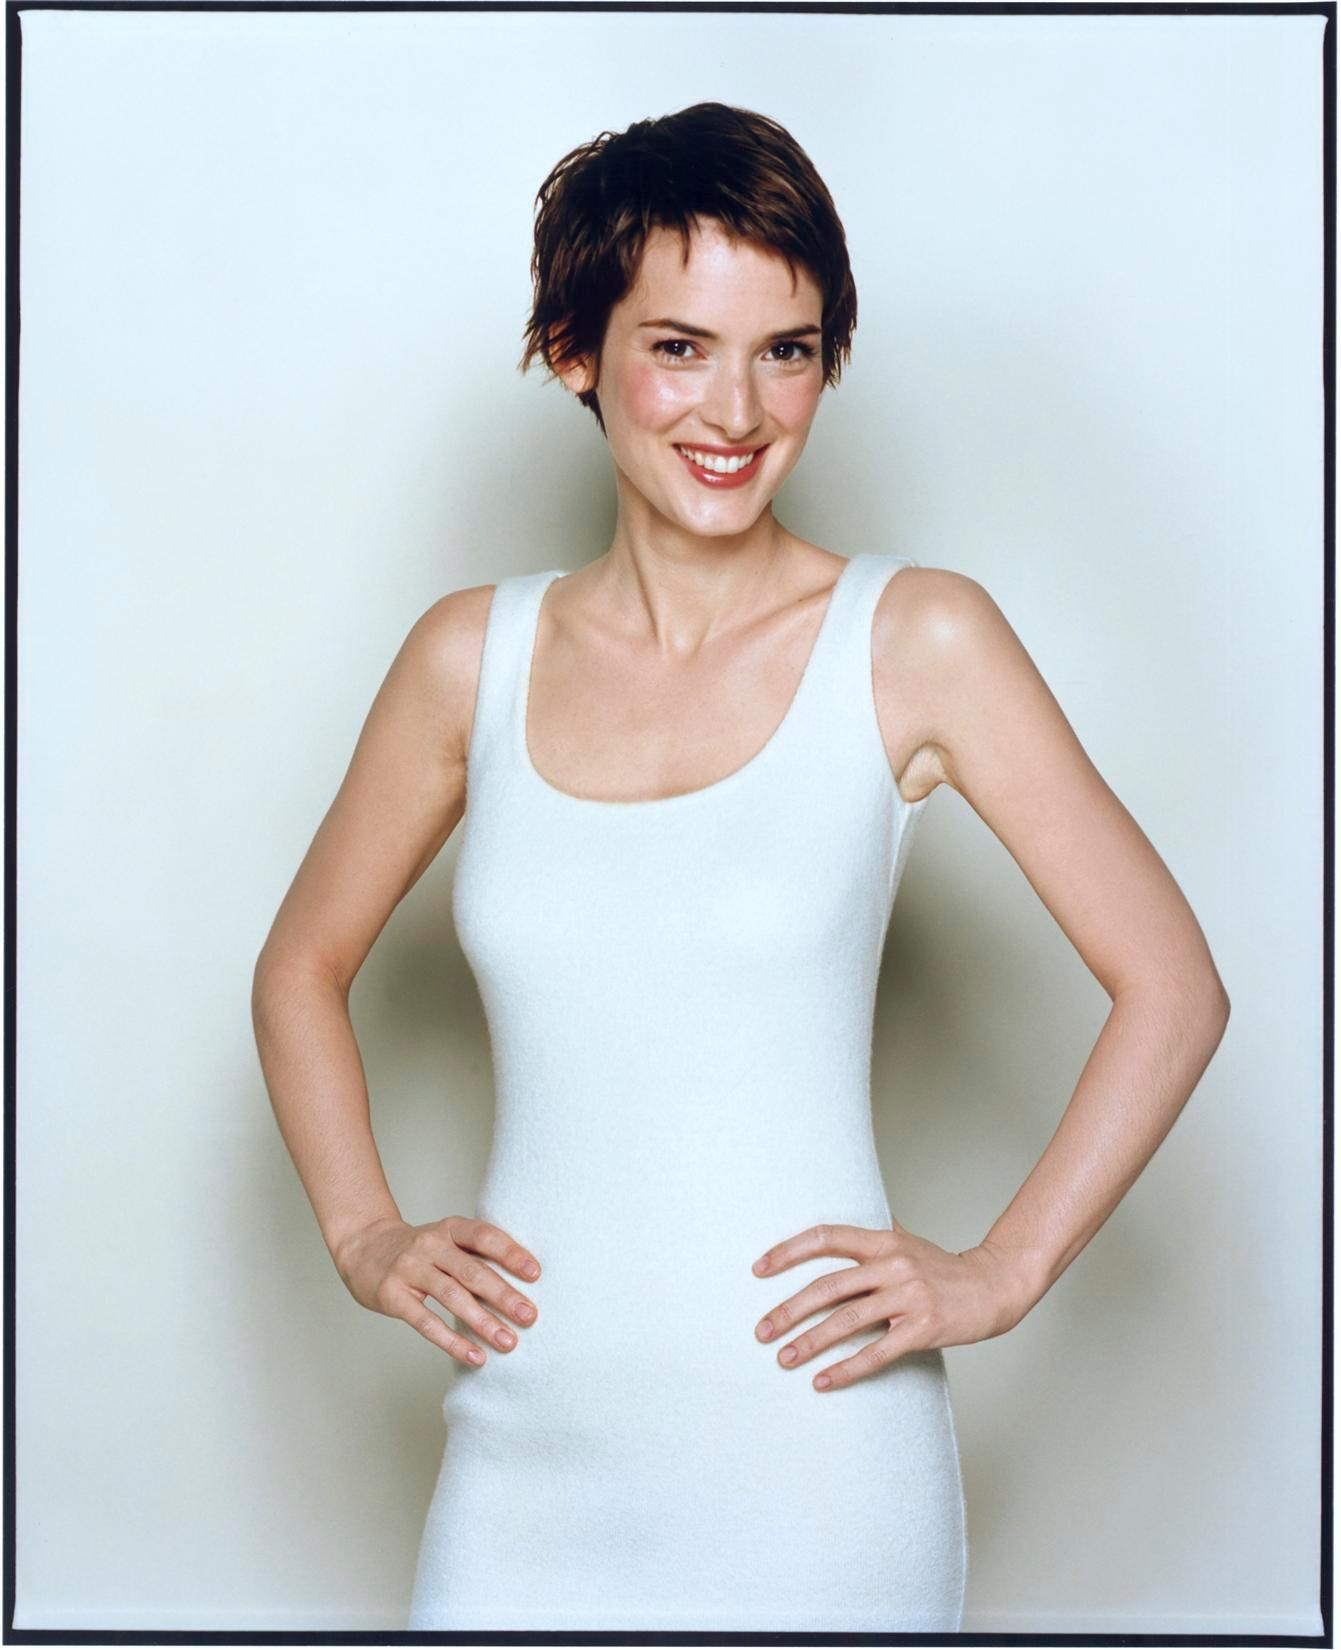 Stewart Shining Photoshoot 2000